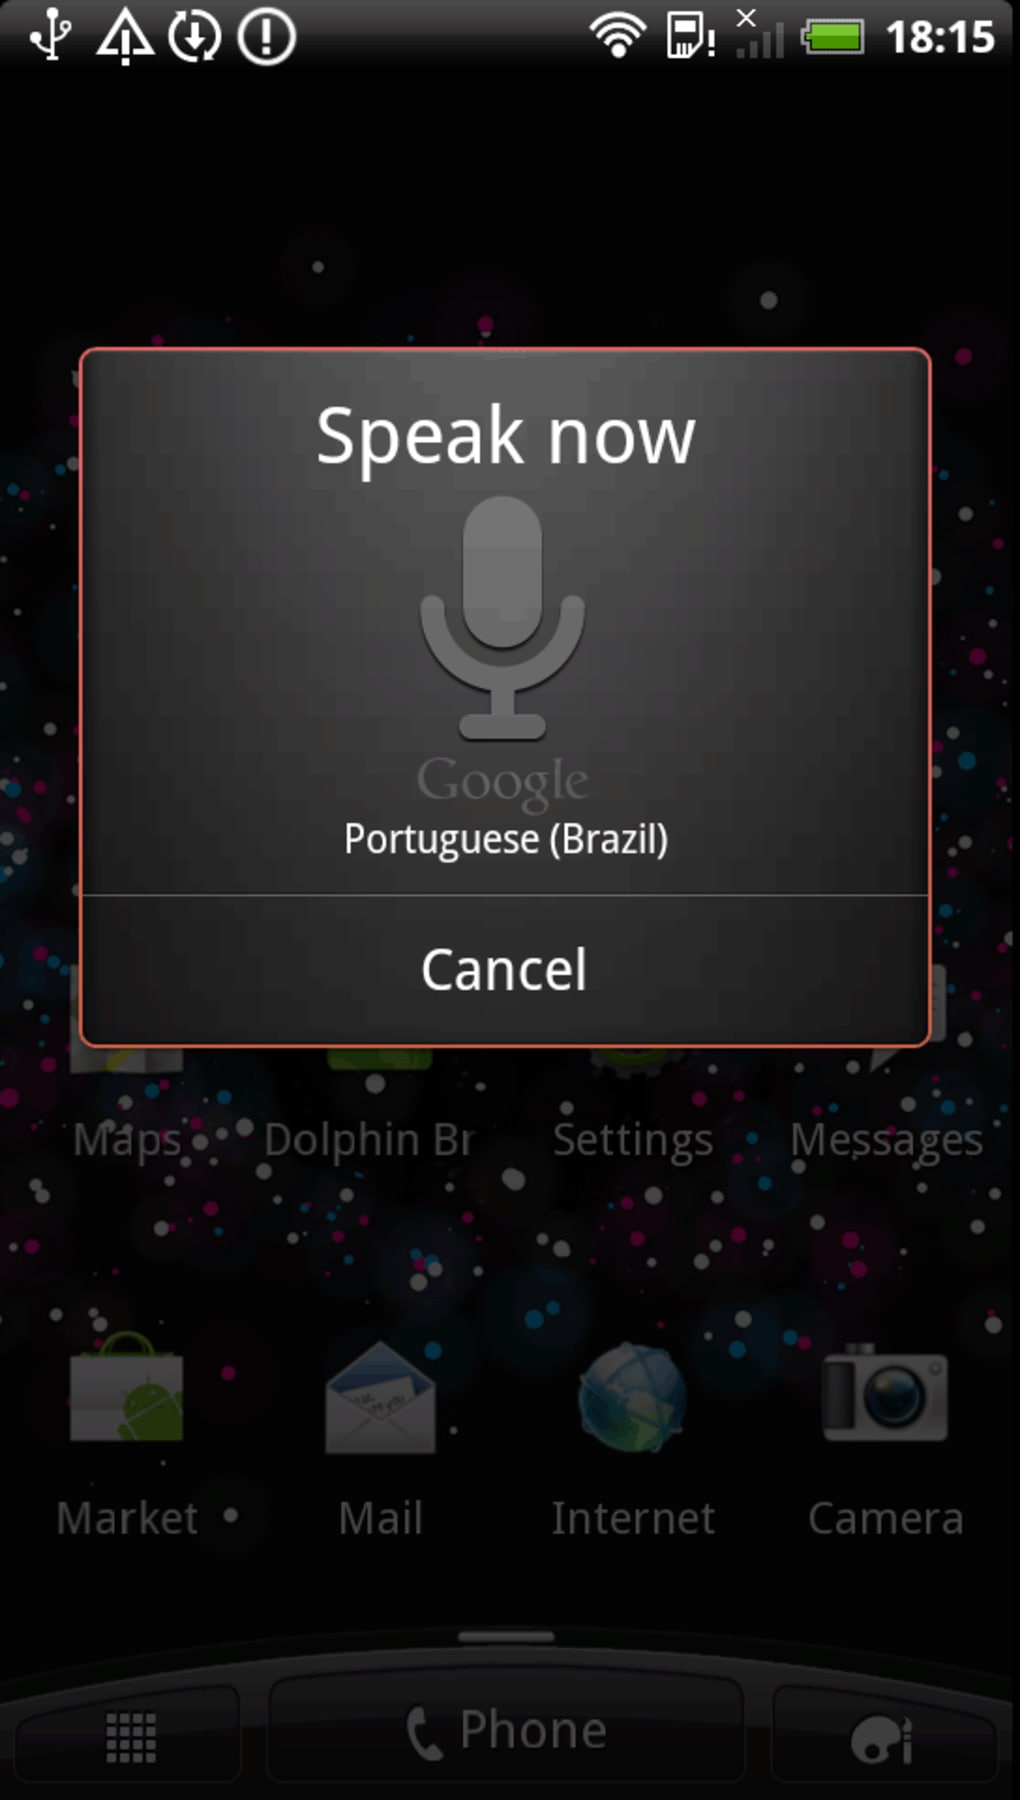 Google Voice Search APK for Android - Download